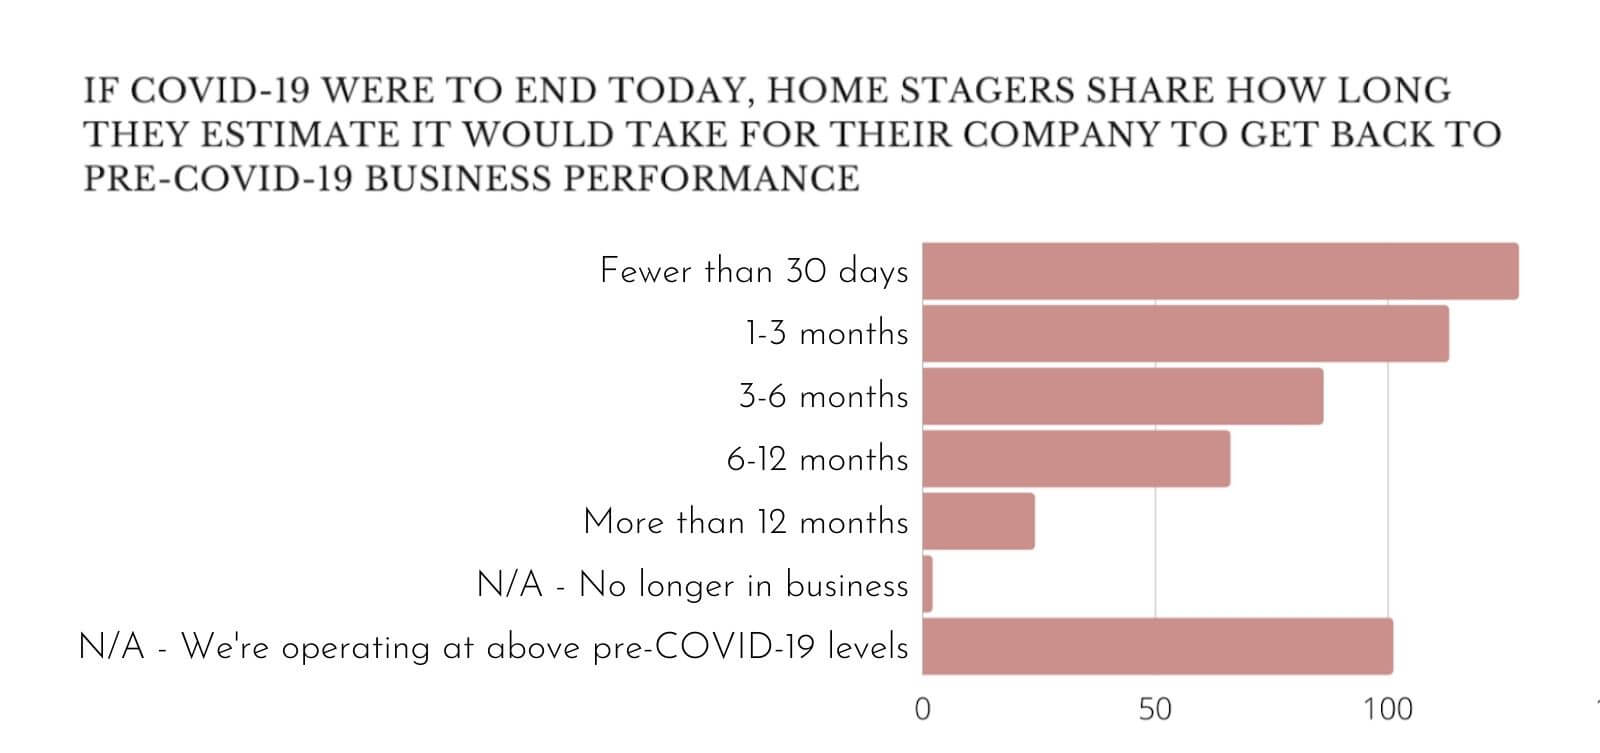 A graph showing how many days it would take home stagers to operate back at pre-covid business activity